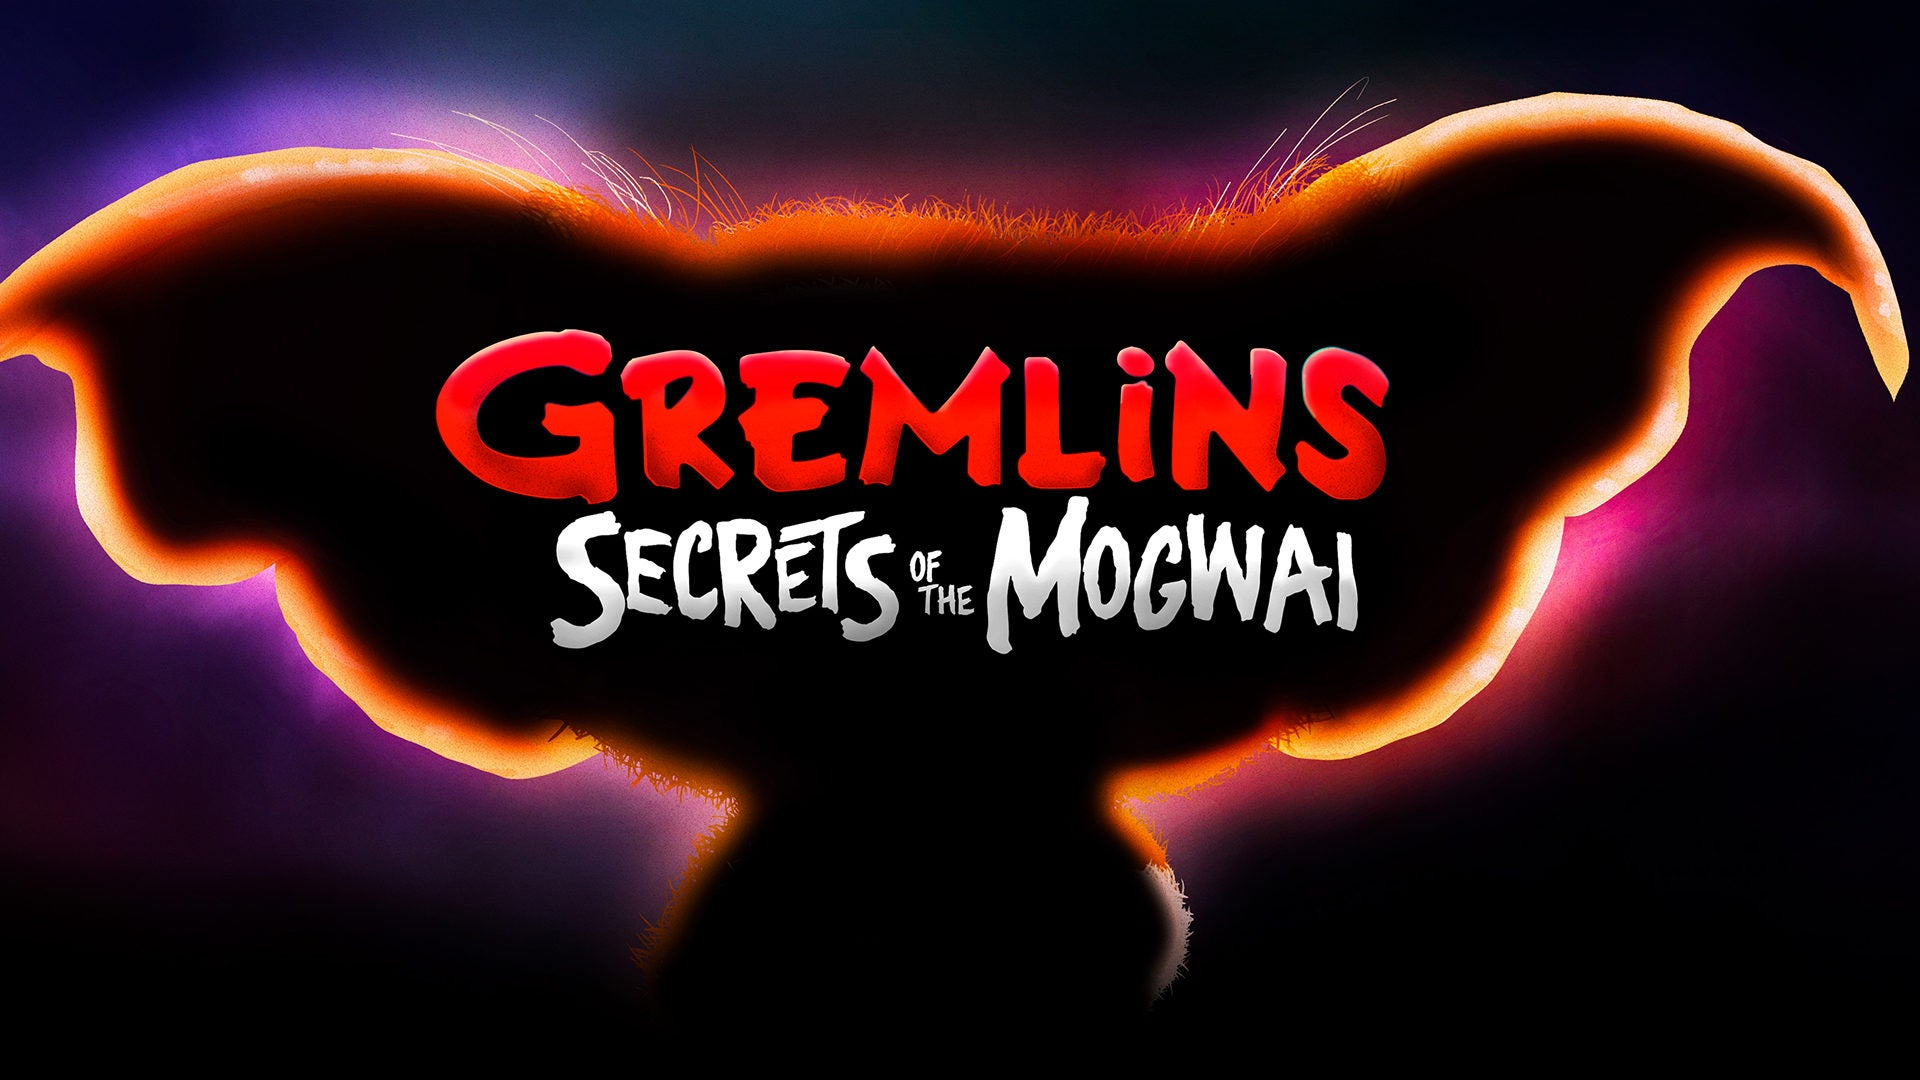 That Animated Gremlins TV Show Is Officially Happening